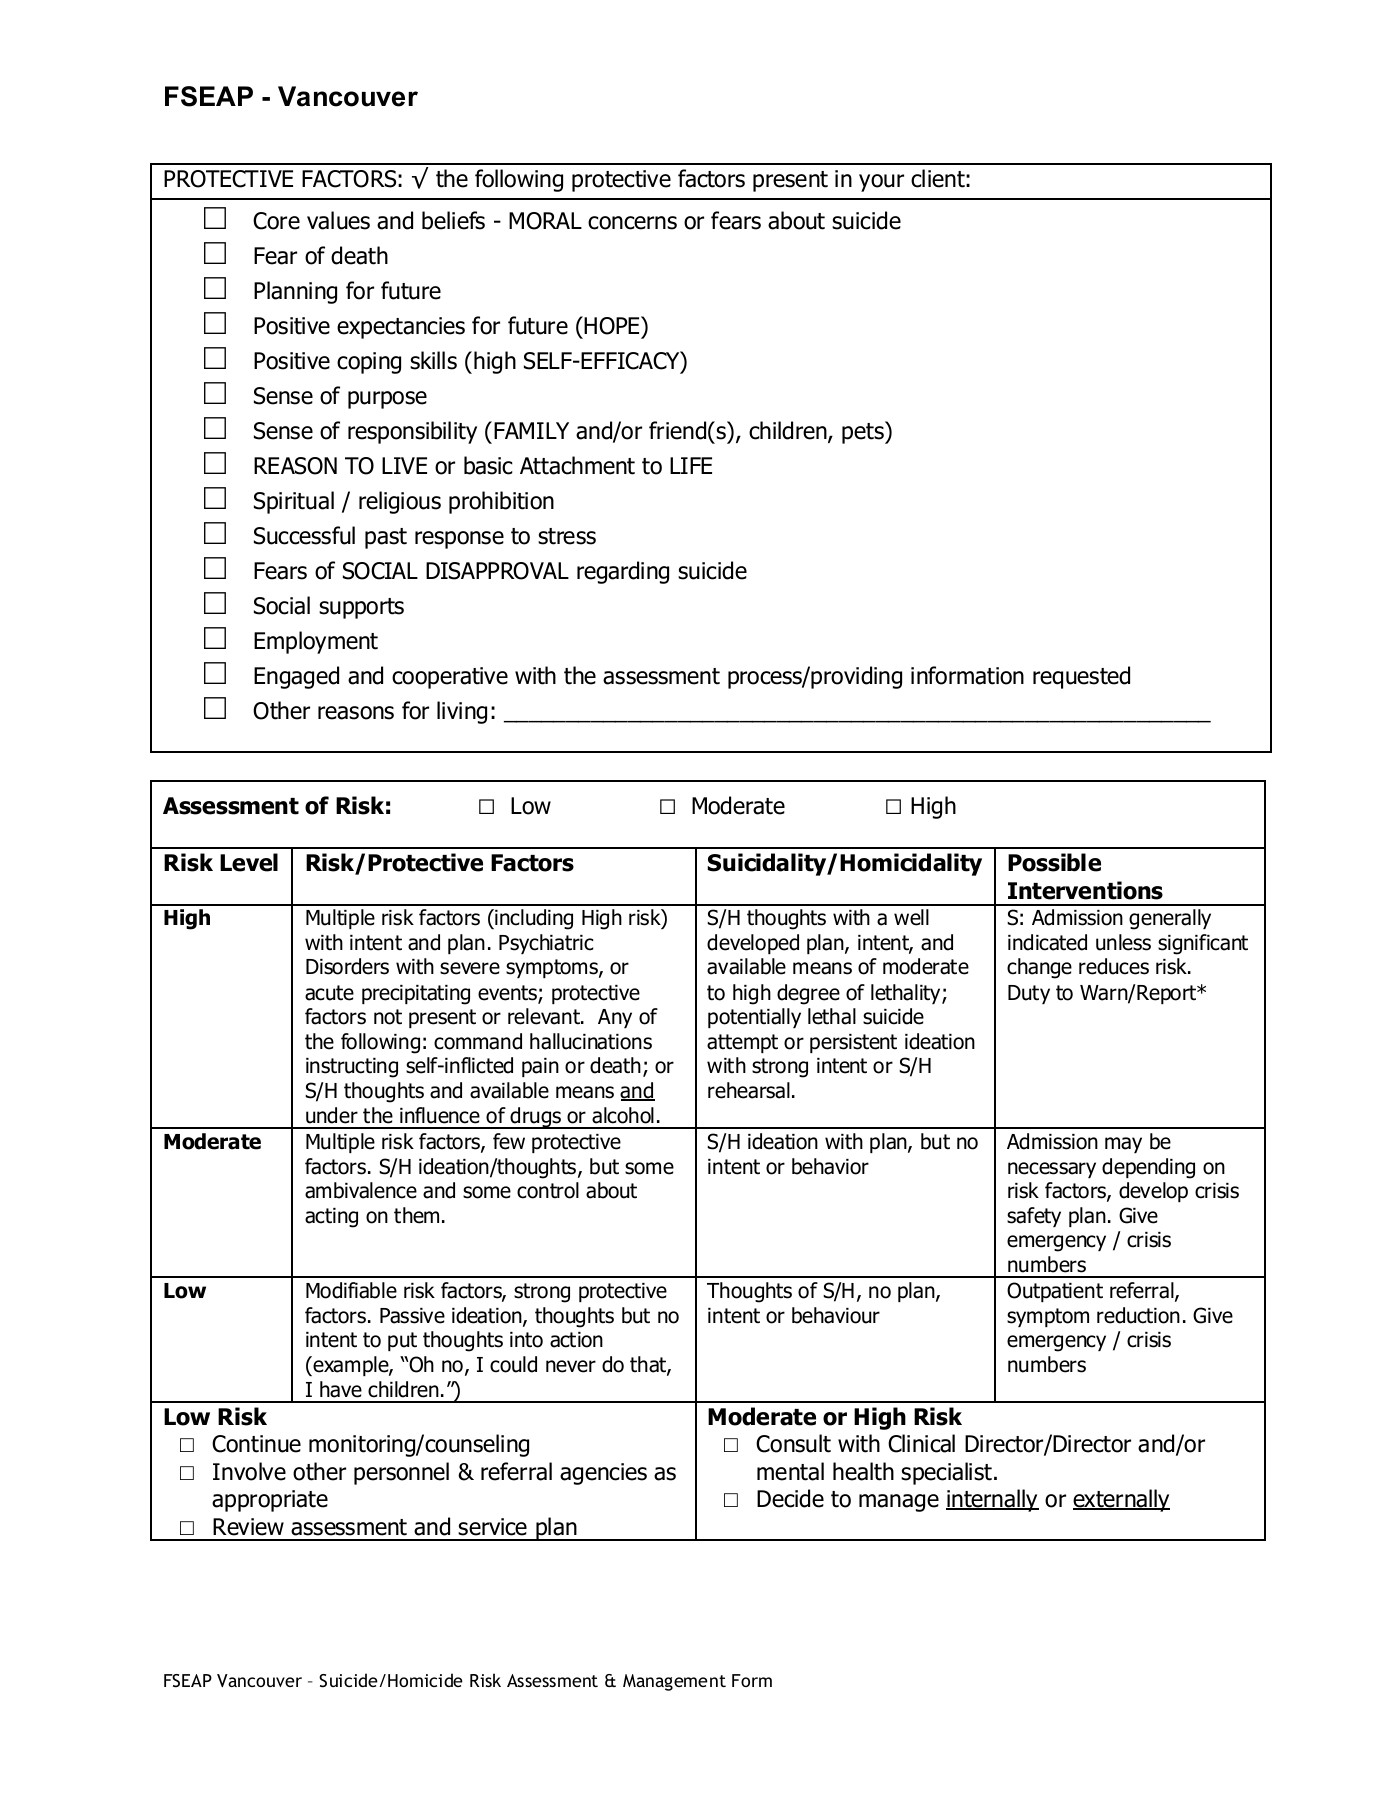 Suicidehomicide Risk Assessment Safety Management Plan